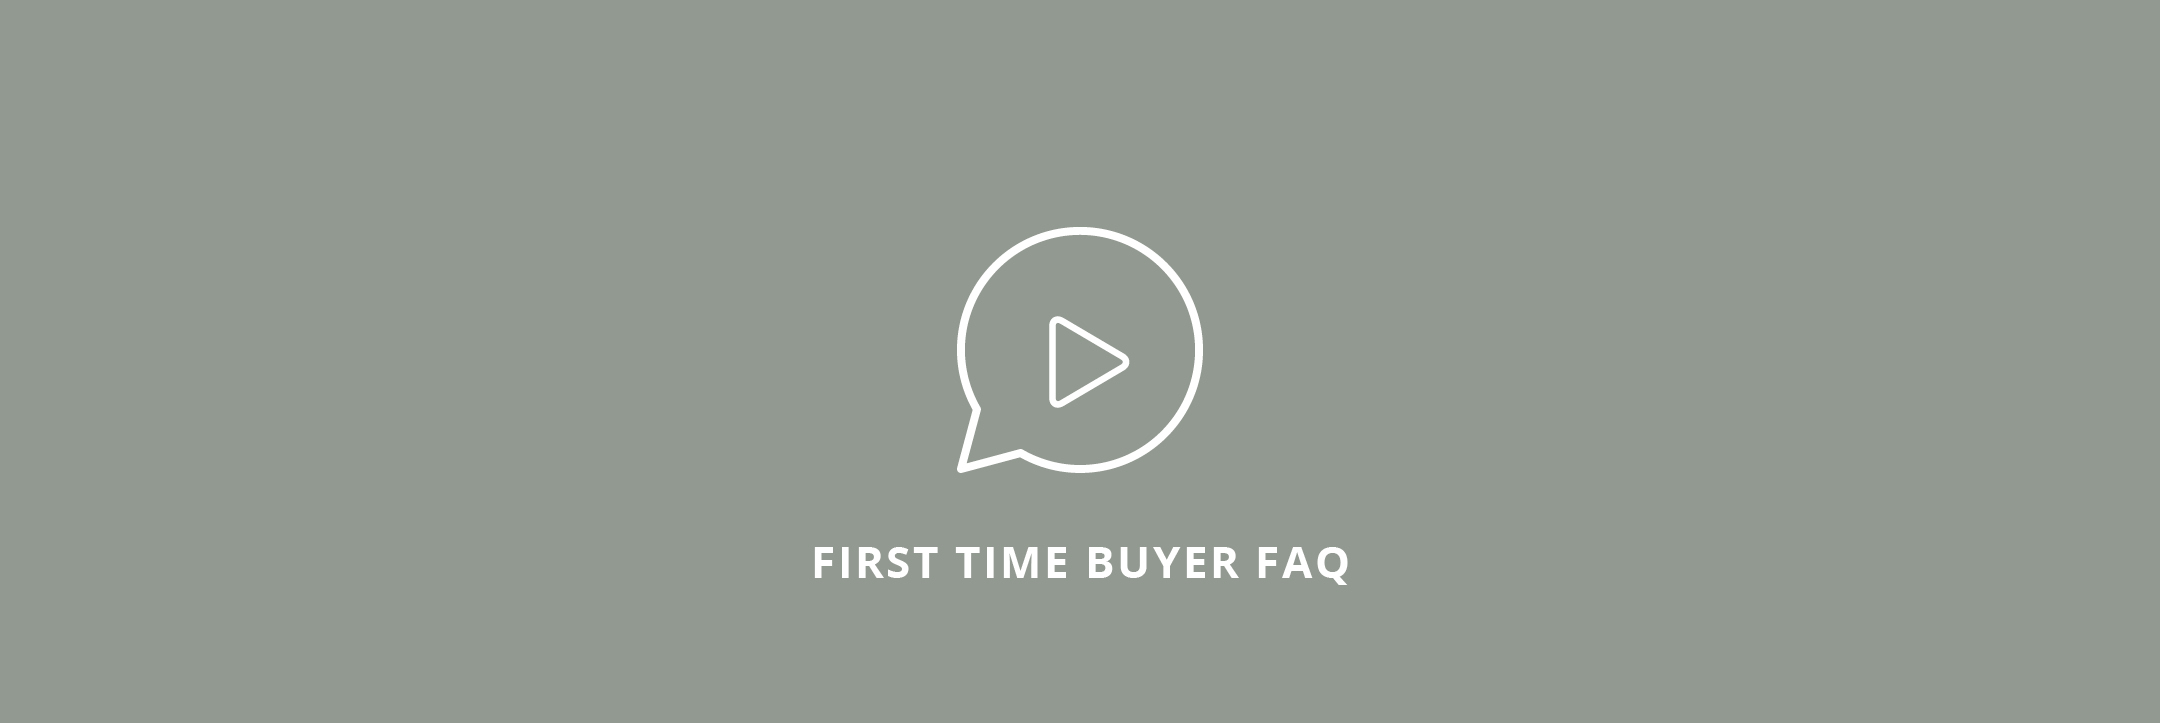 Seville Home Buying FAQ